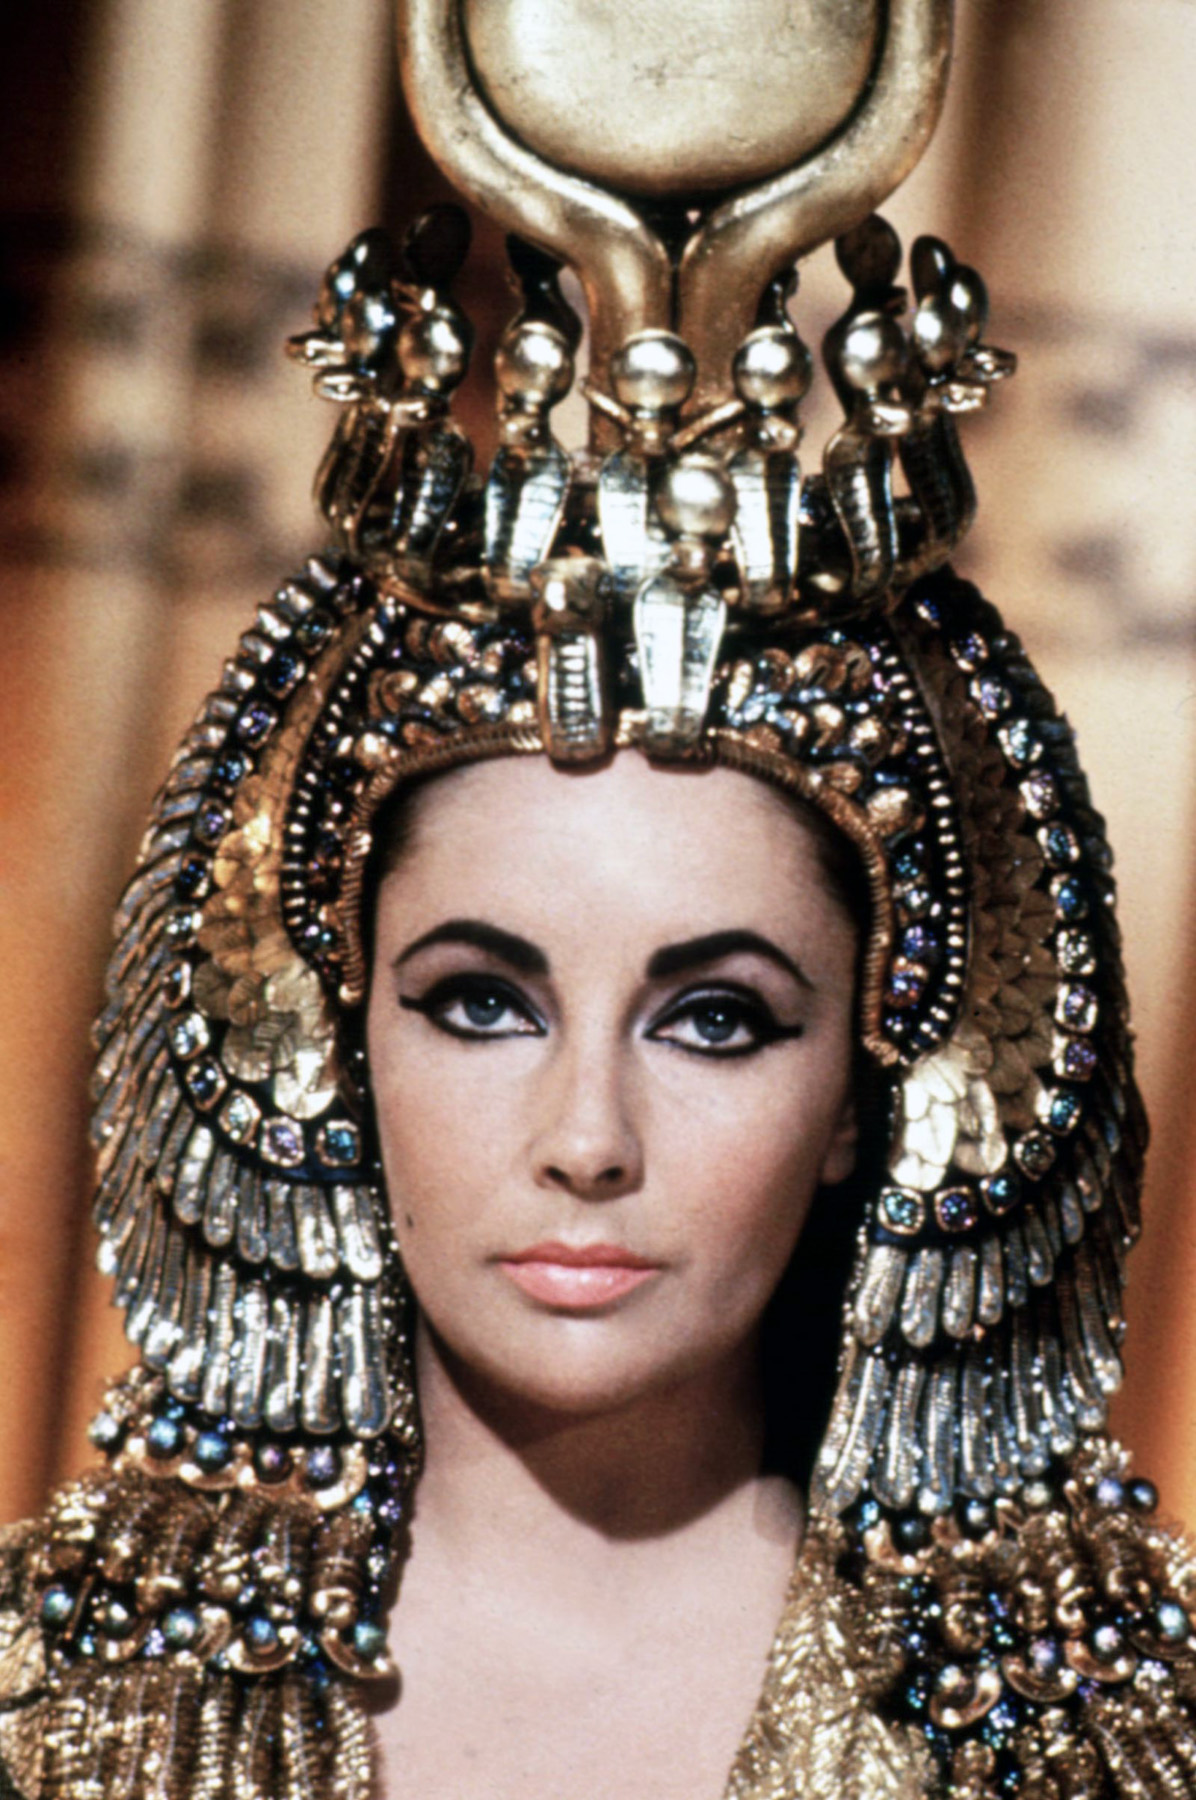 http://www.doctormacro.com/Images/Taylor,%20Elizabeth/Annex/Annex%20-%20Taylor,%20Elizabeth%20(Cleopatra)_01.jpg